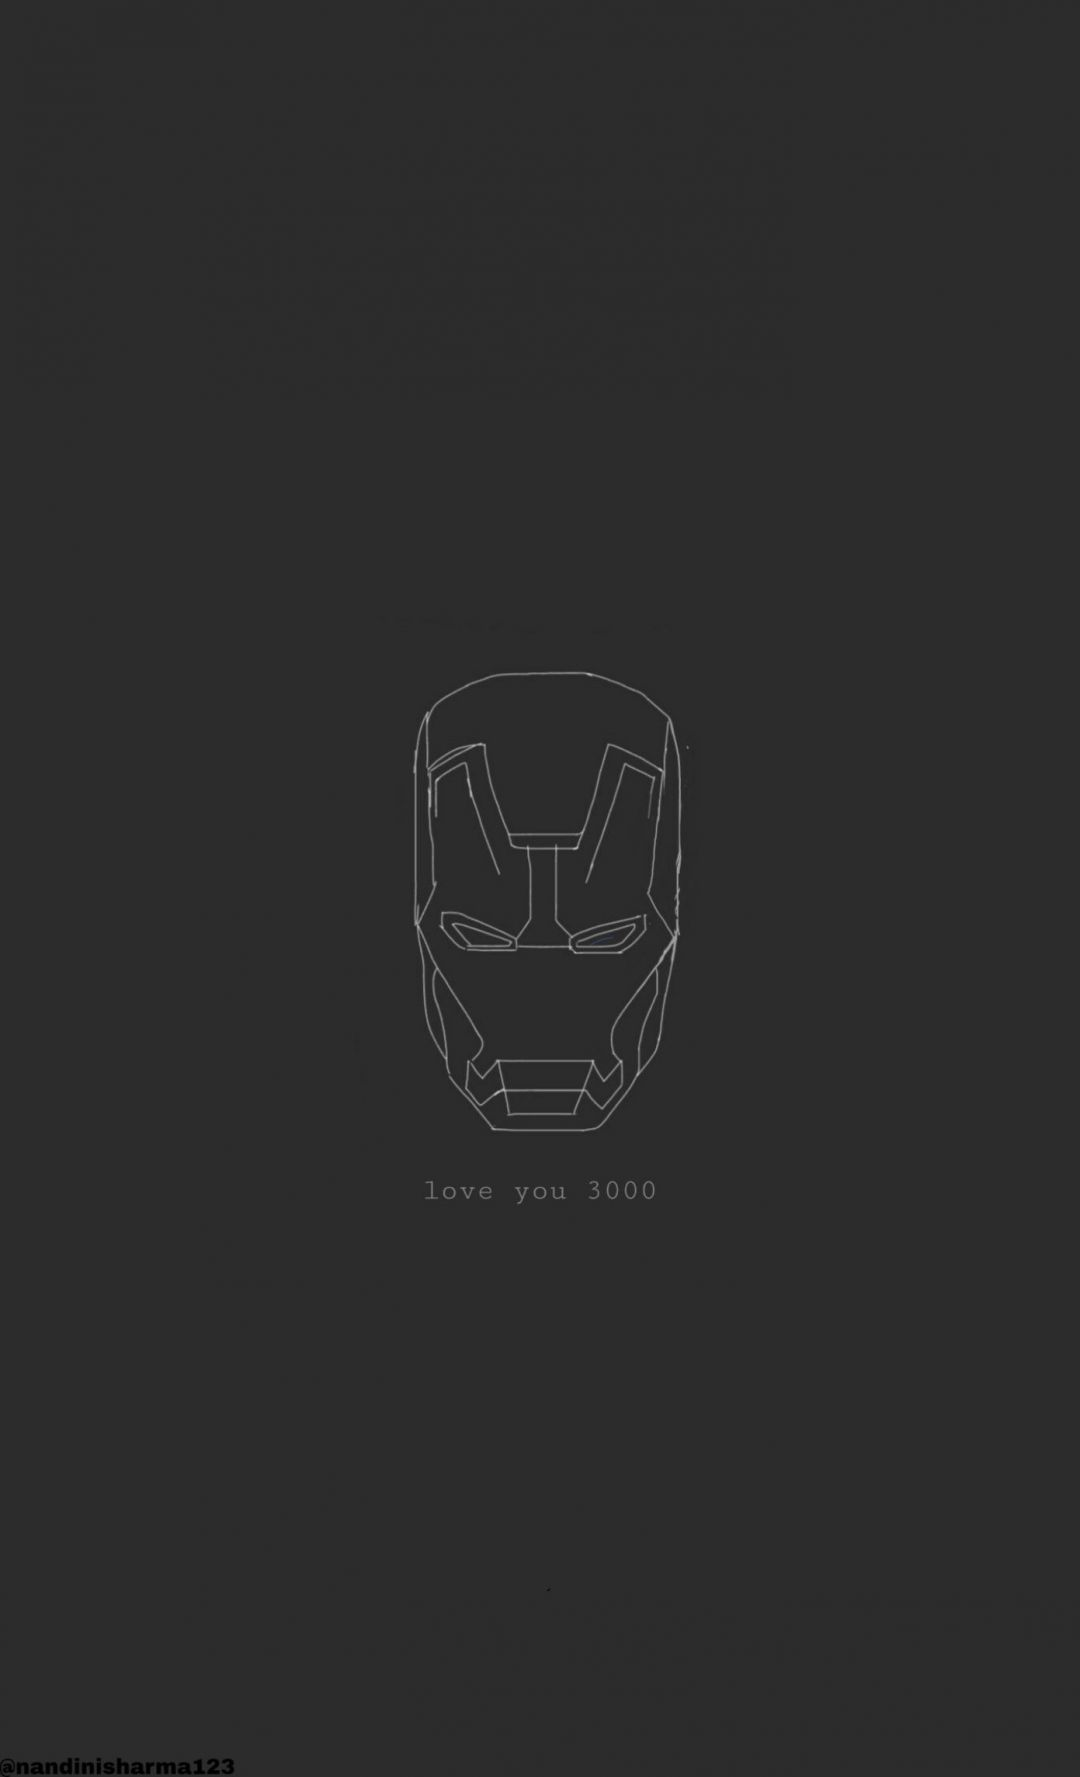 45 Iron Man Aesthetic Images Hd Photos 1080p Wallpapers